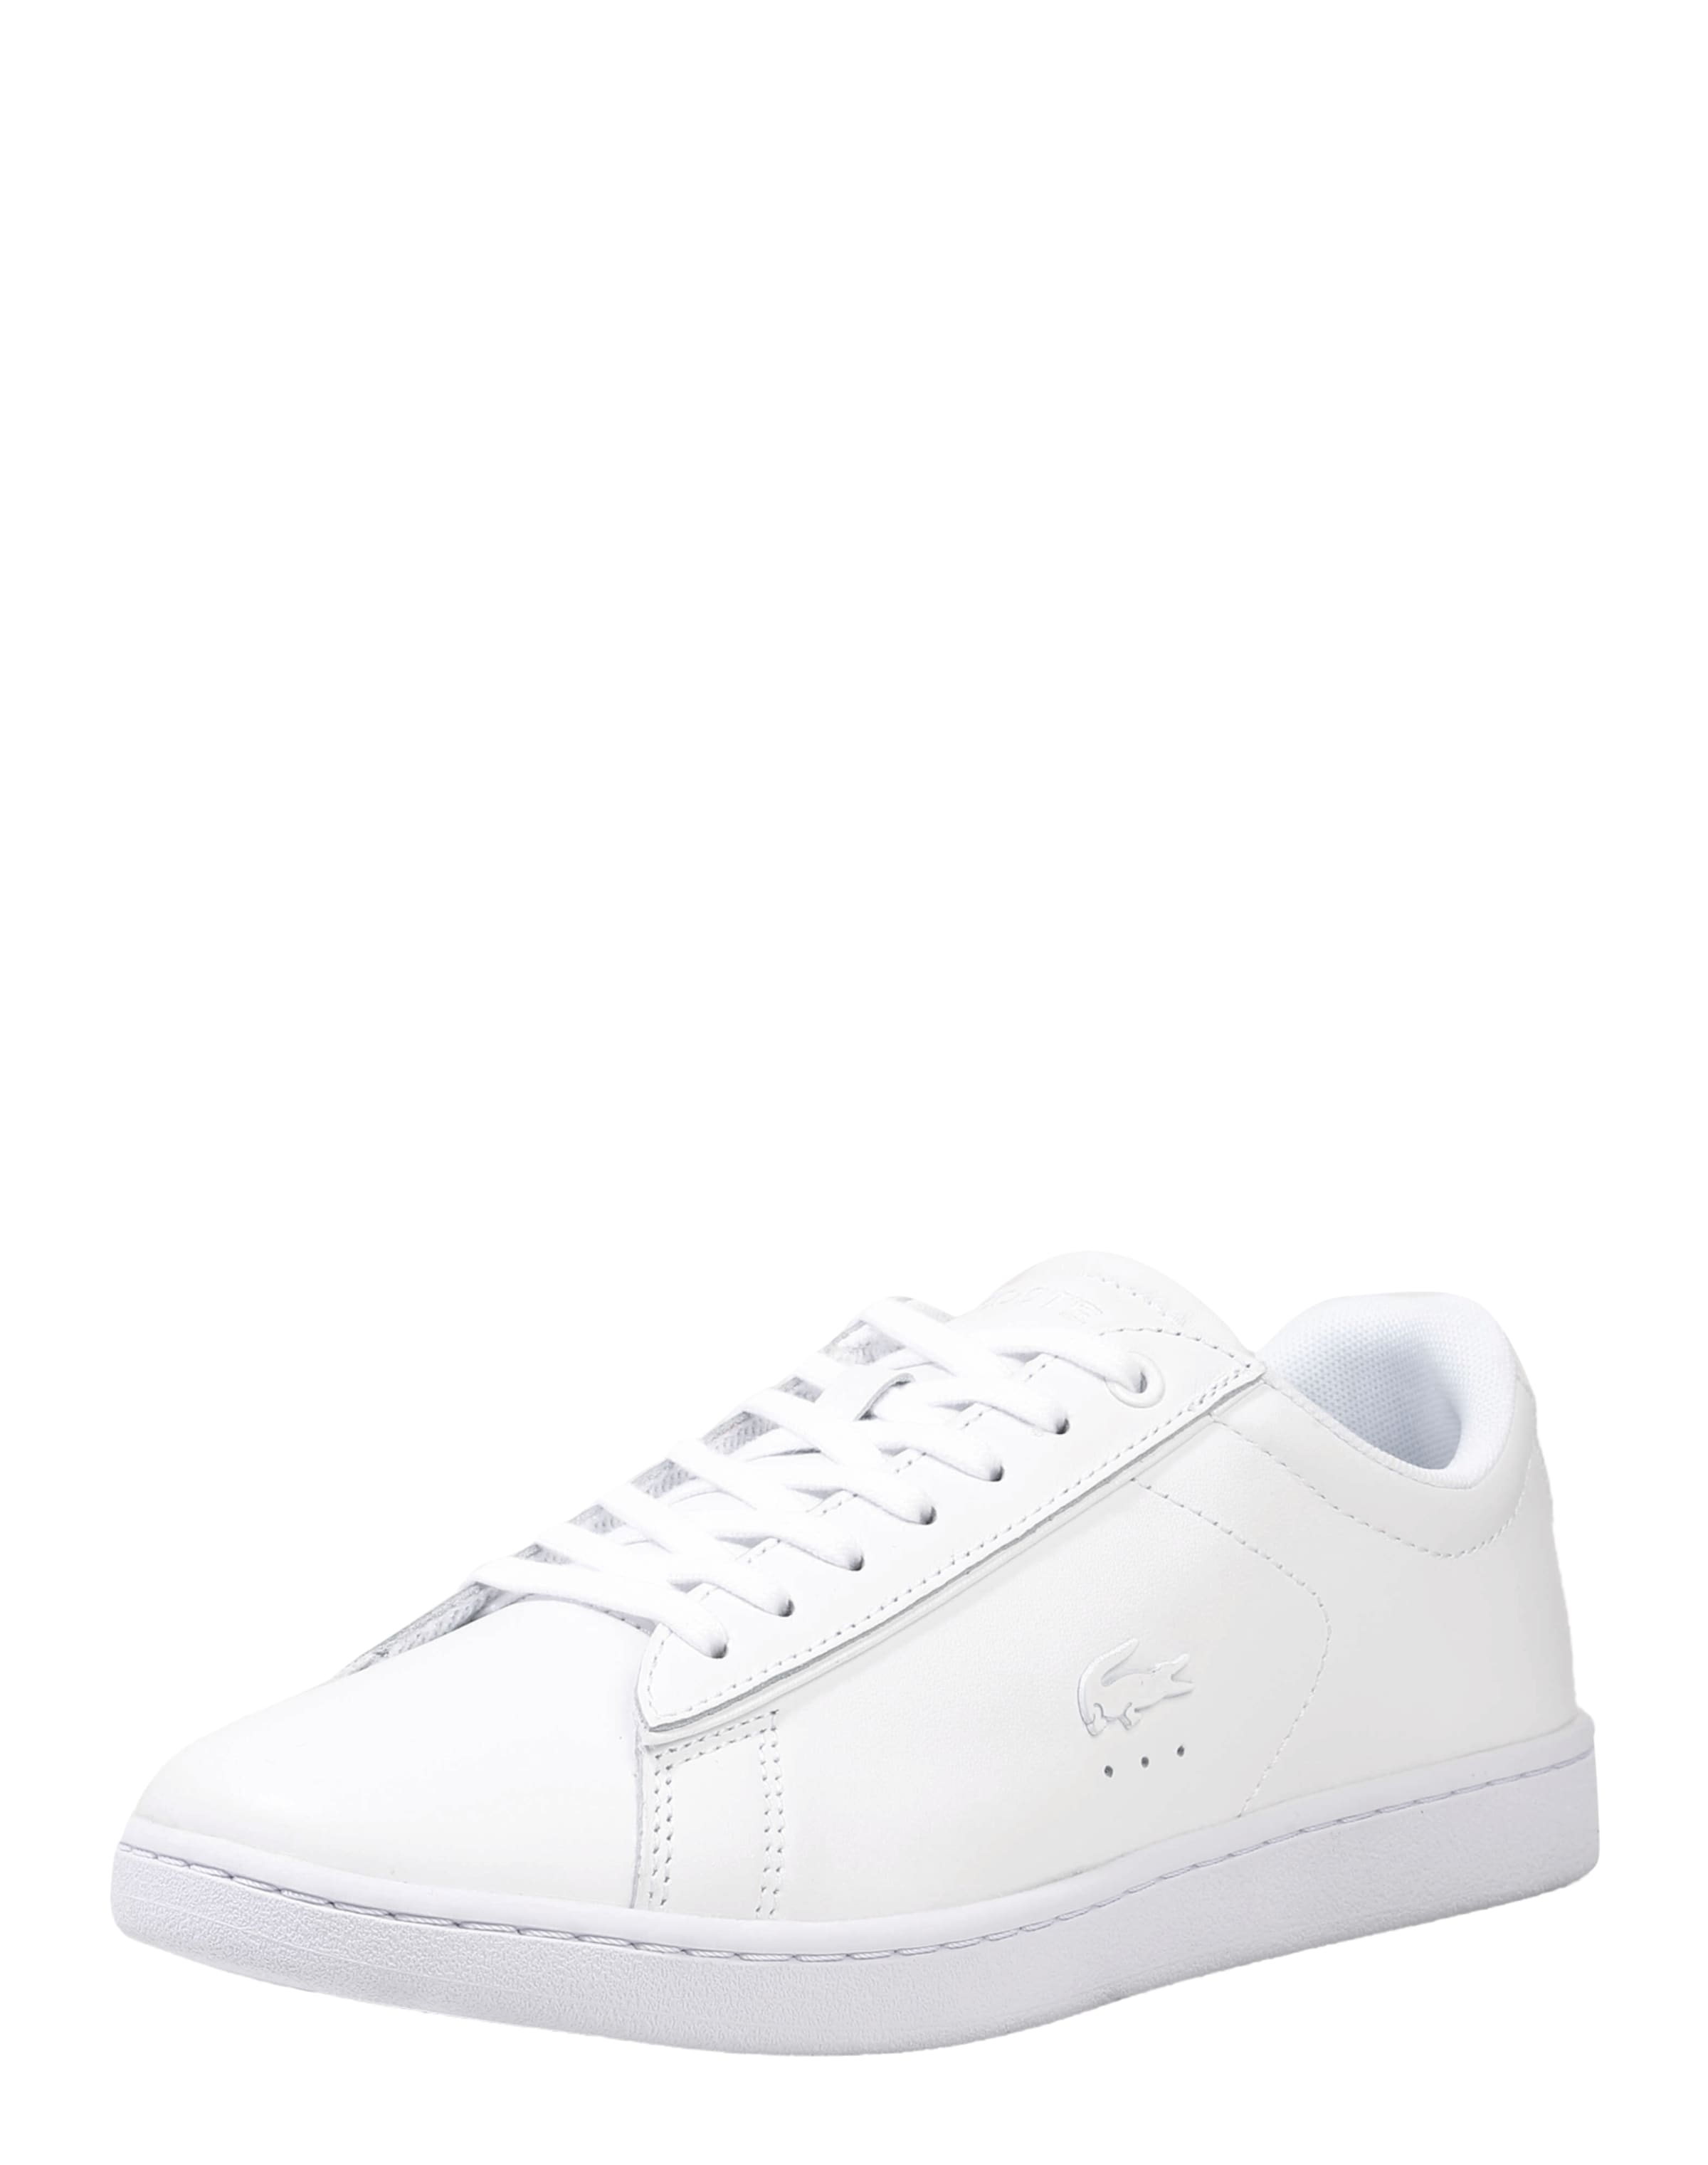 LACOSTE       Turnschuhe Carnaby Evo c72d51